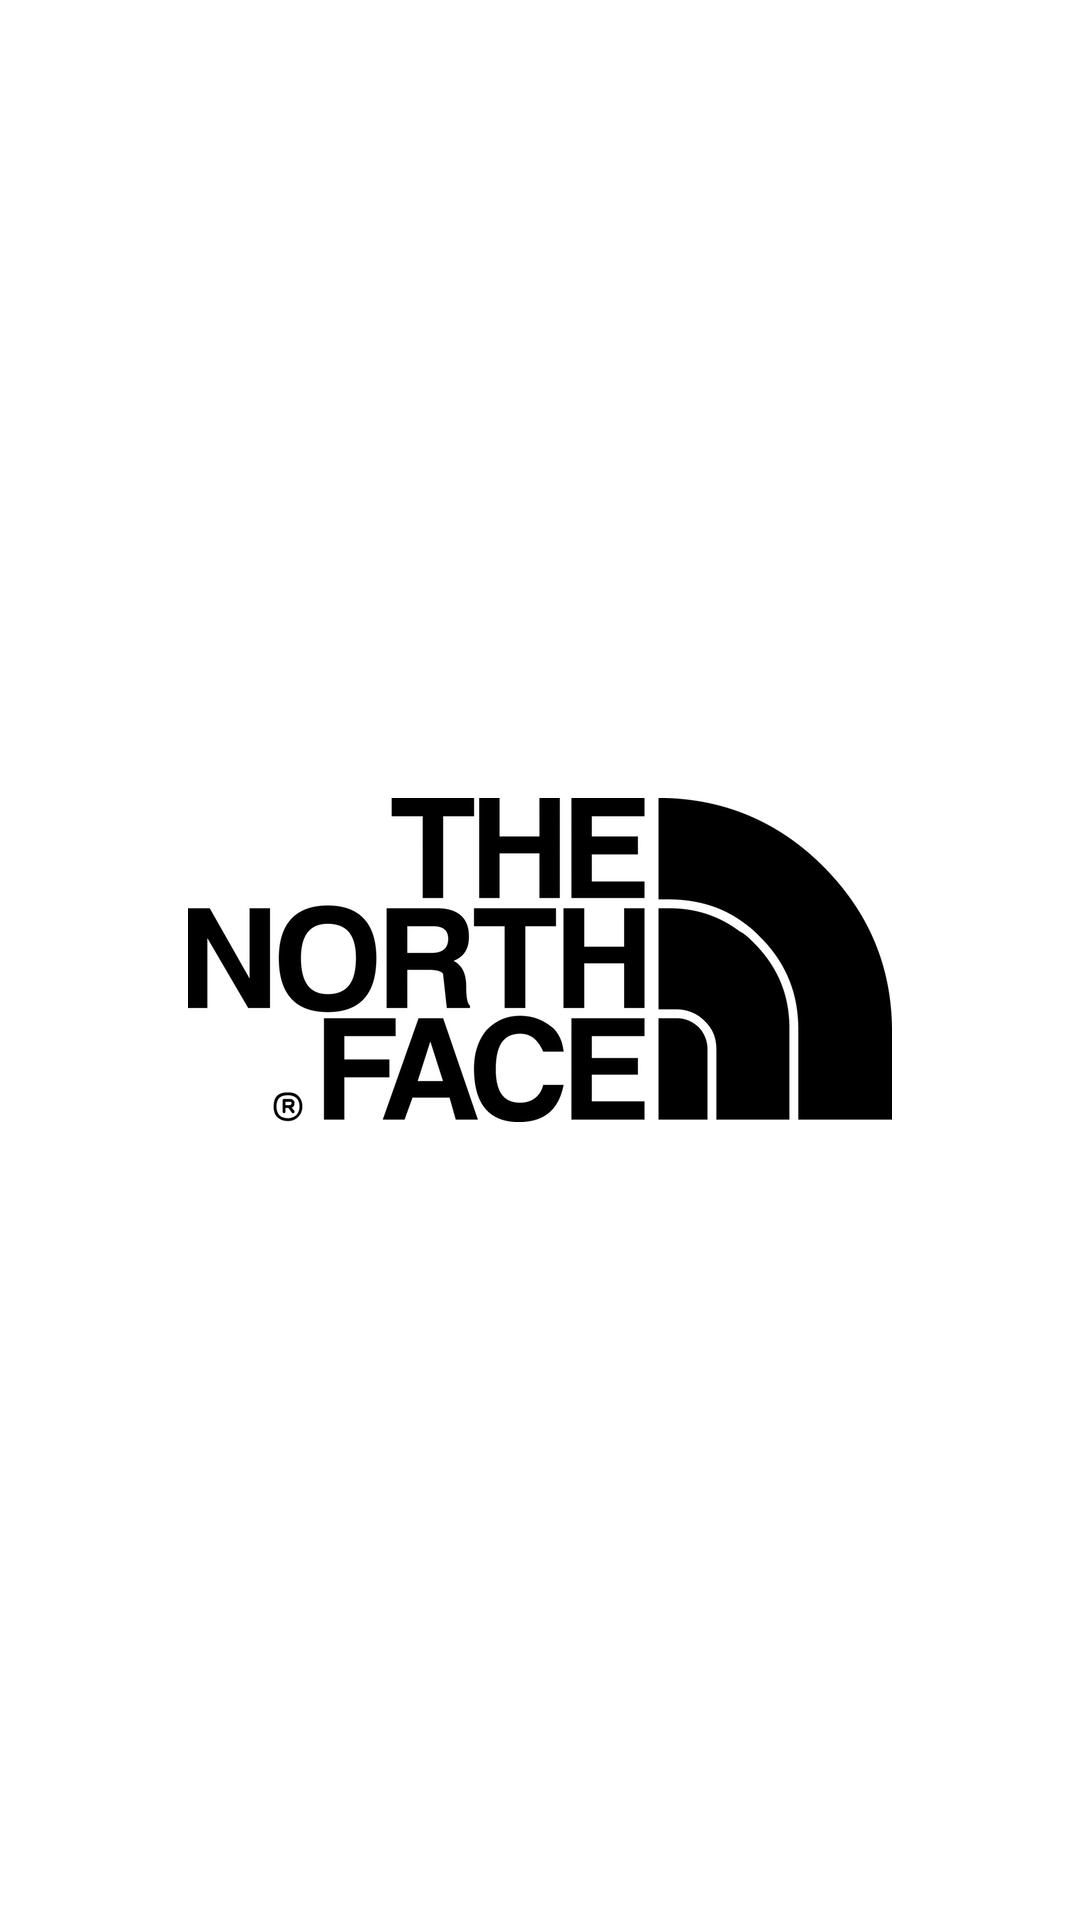 Northface01 North Face Brand Logo Design Hypebeast Wallpaper